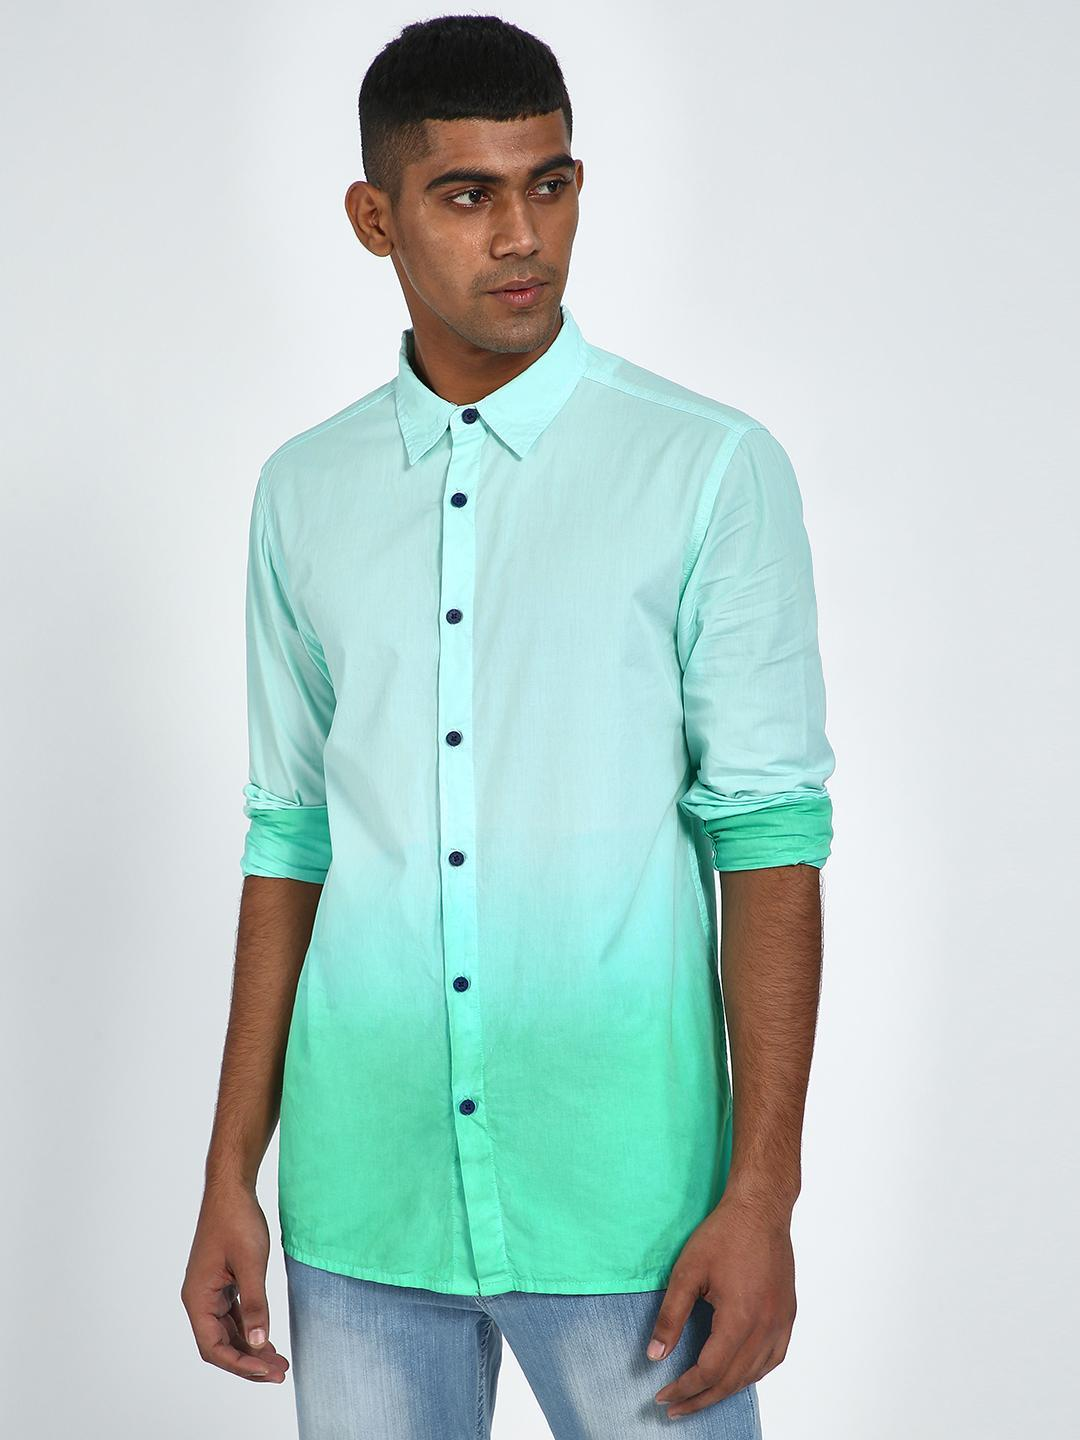 Blue Saint Multi Two Toned Shirt With Contrast Buttons 1